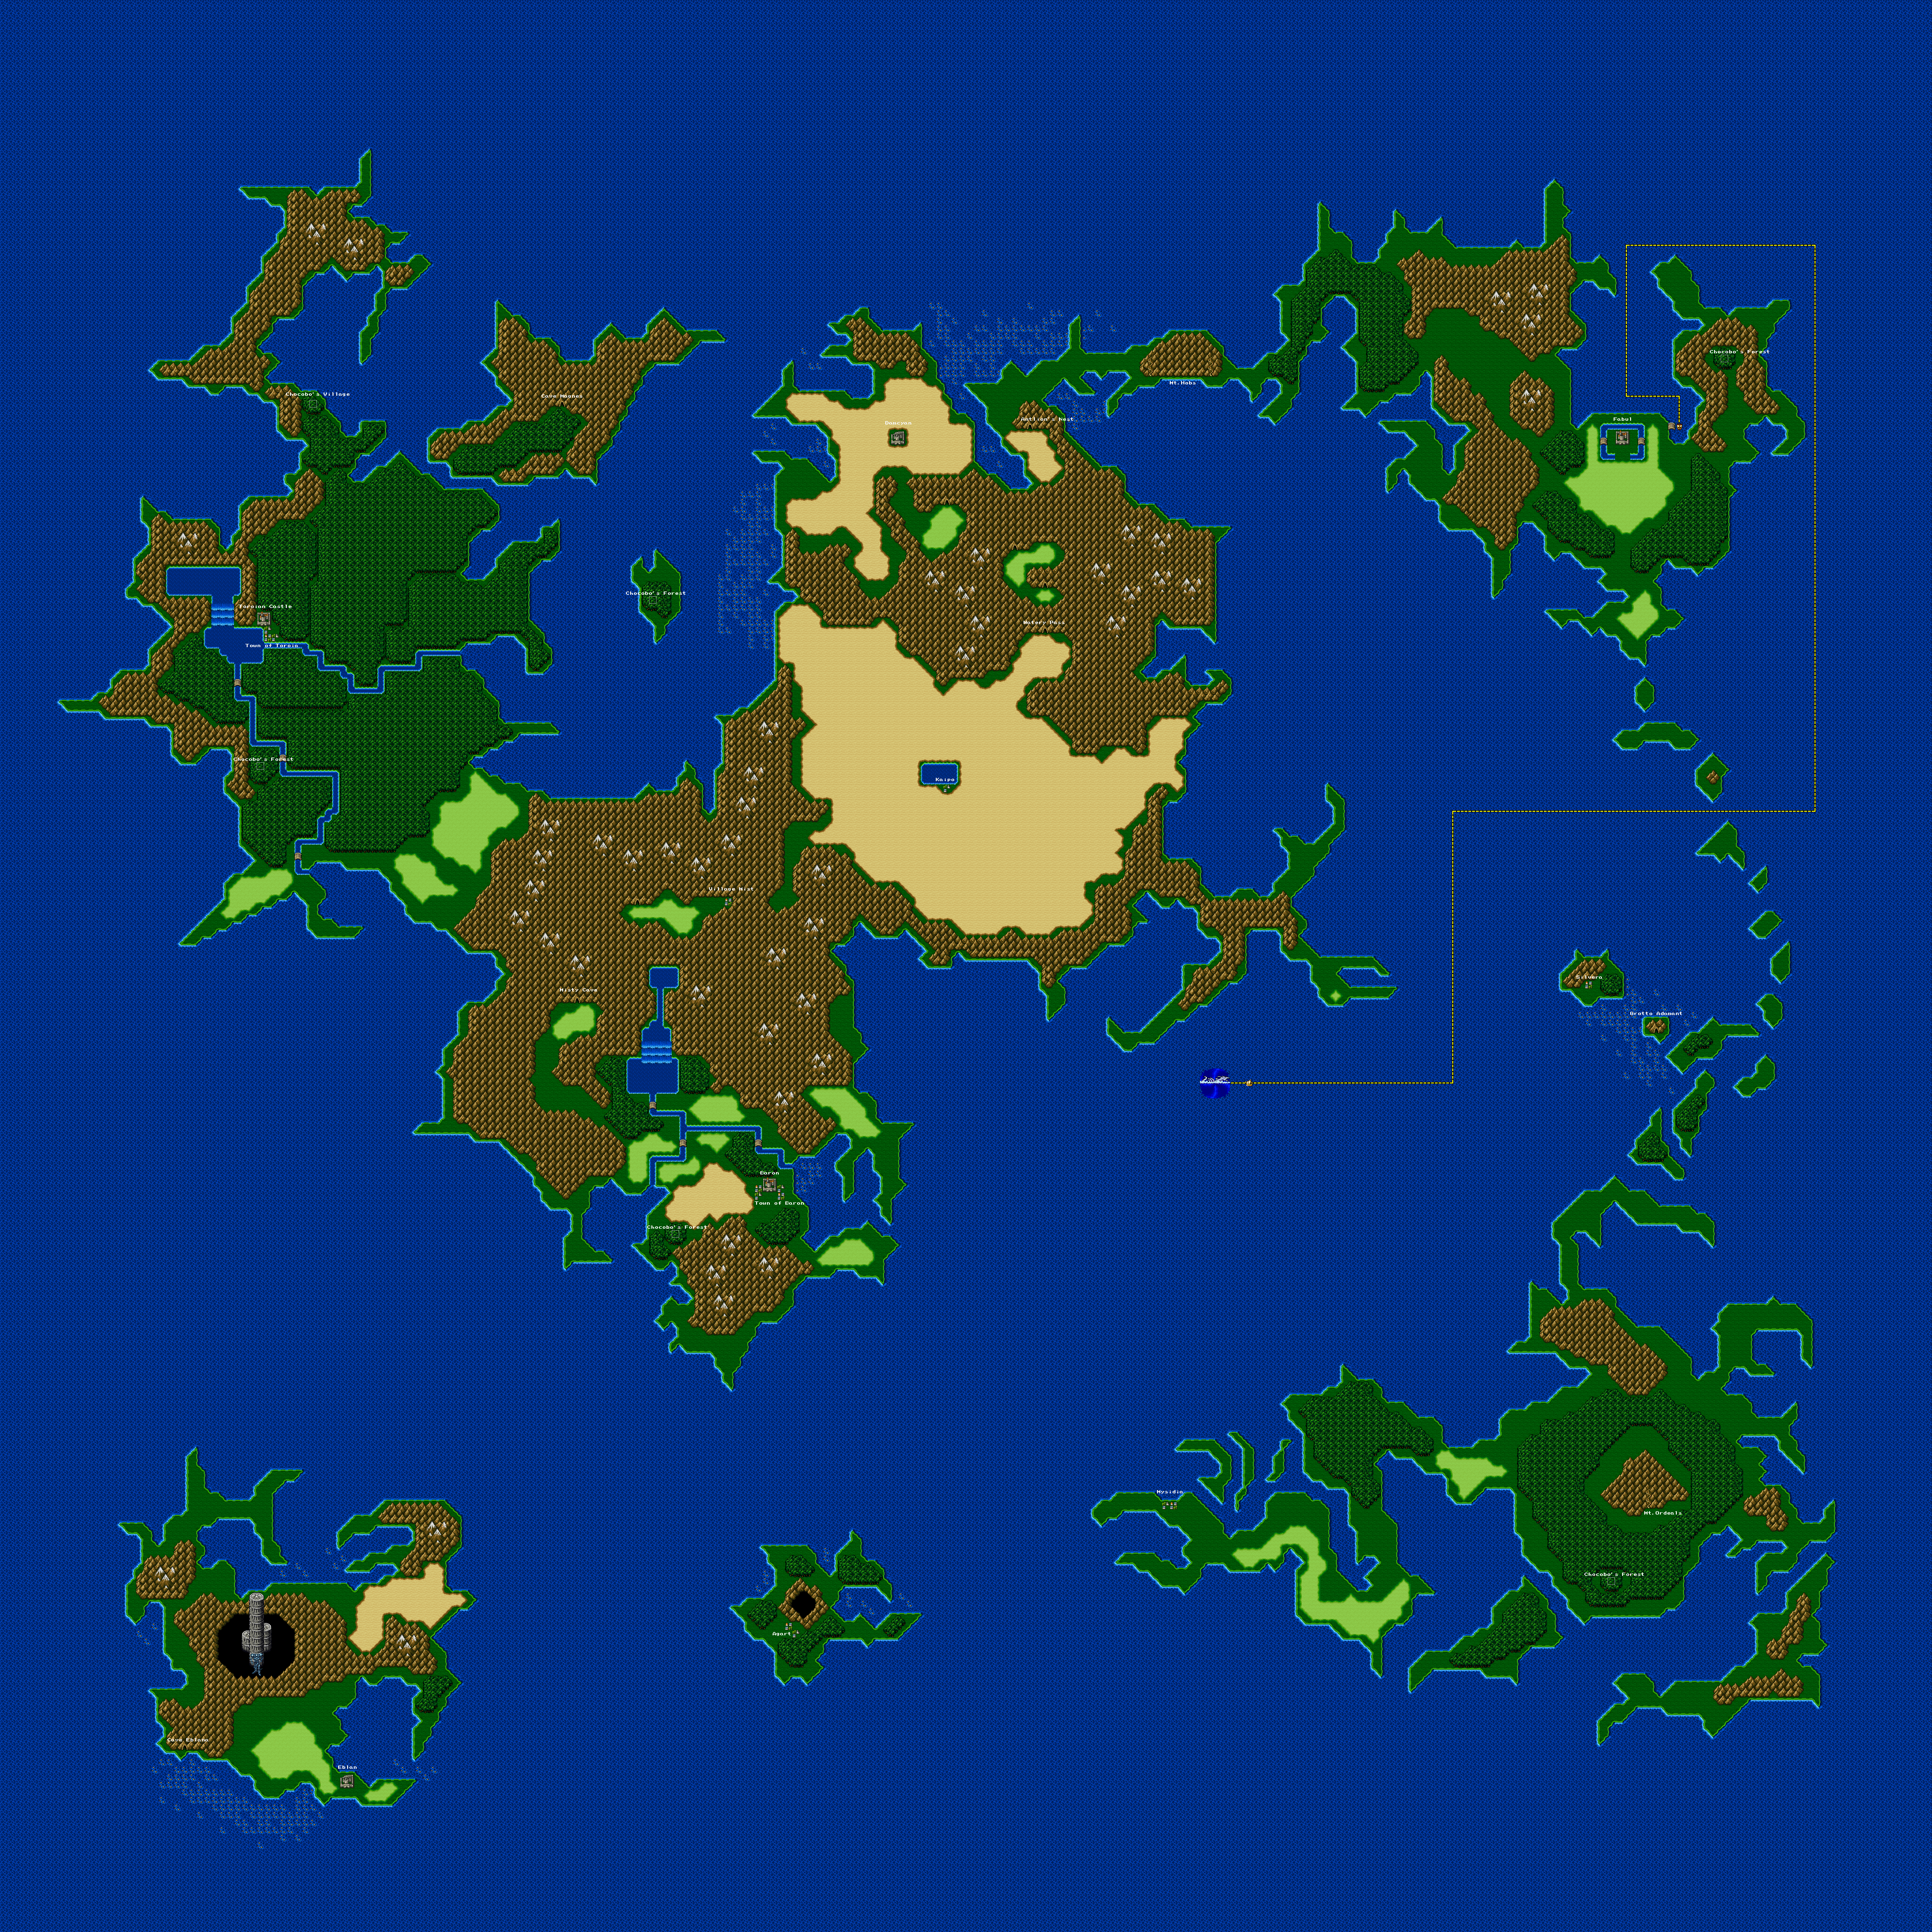 Final Fantasy II Game Maps - Ian-Albert.com